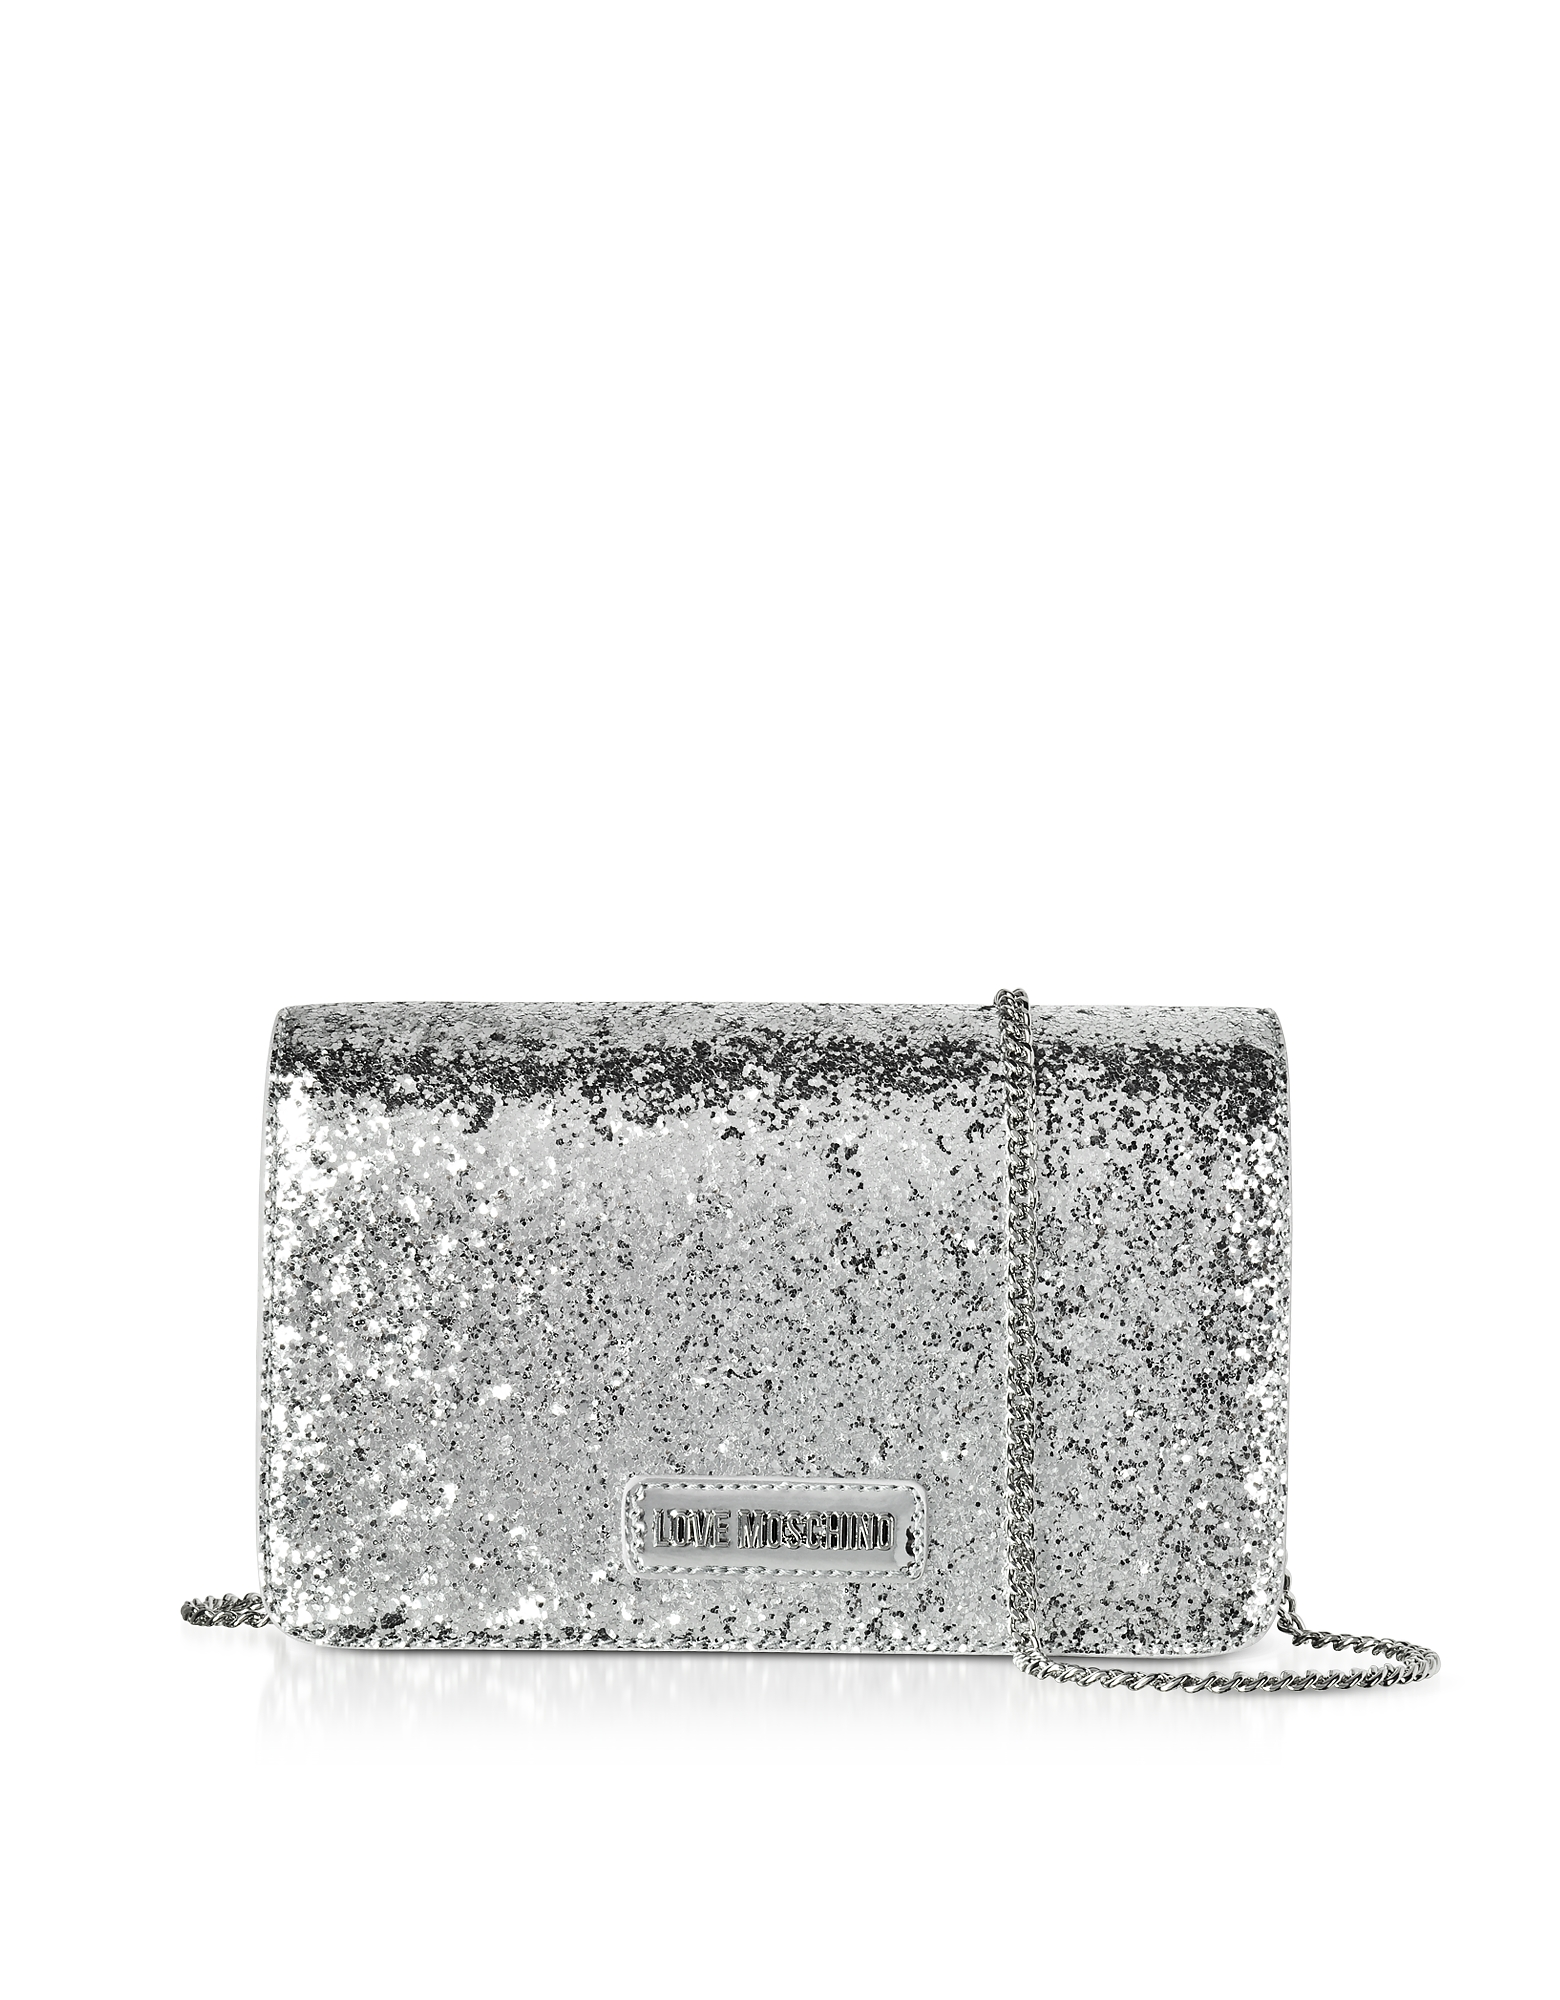 Love Moschino Handbags, Evening Bag Silver Eco-Leather Clutch w/Chain Strap